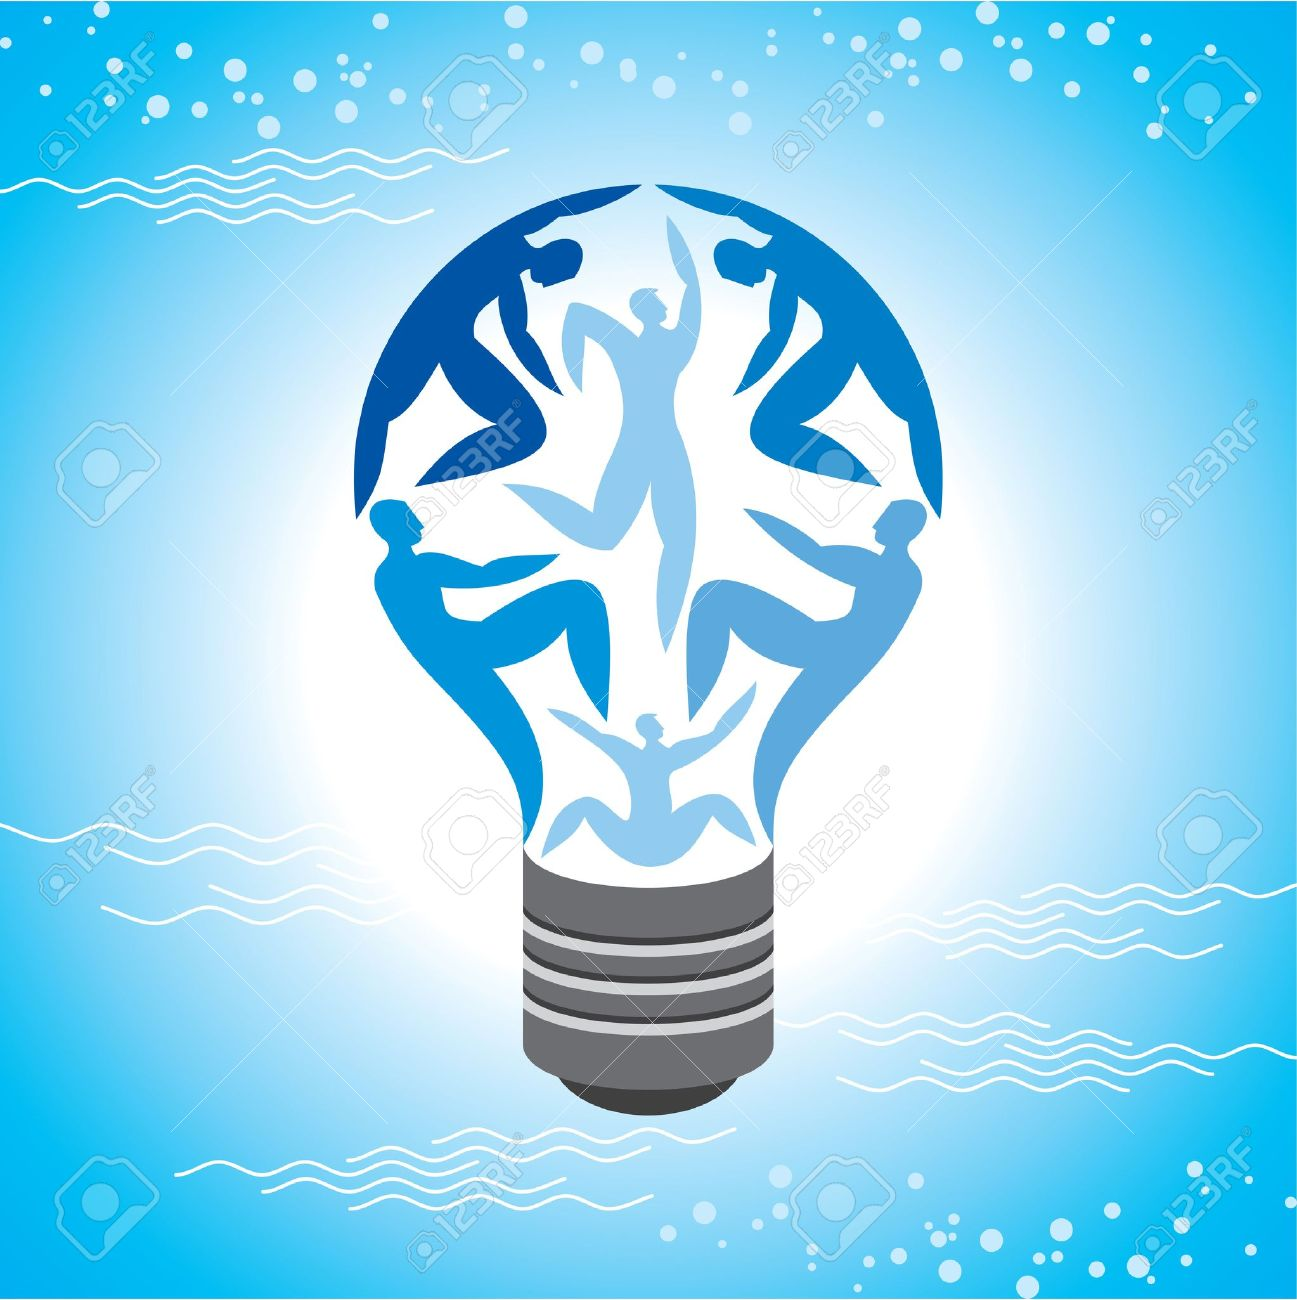 The Light Bulb For Job and Business Concept in Blue Sky Background Stock Vector - 17725526